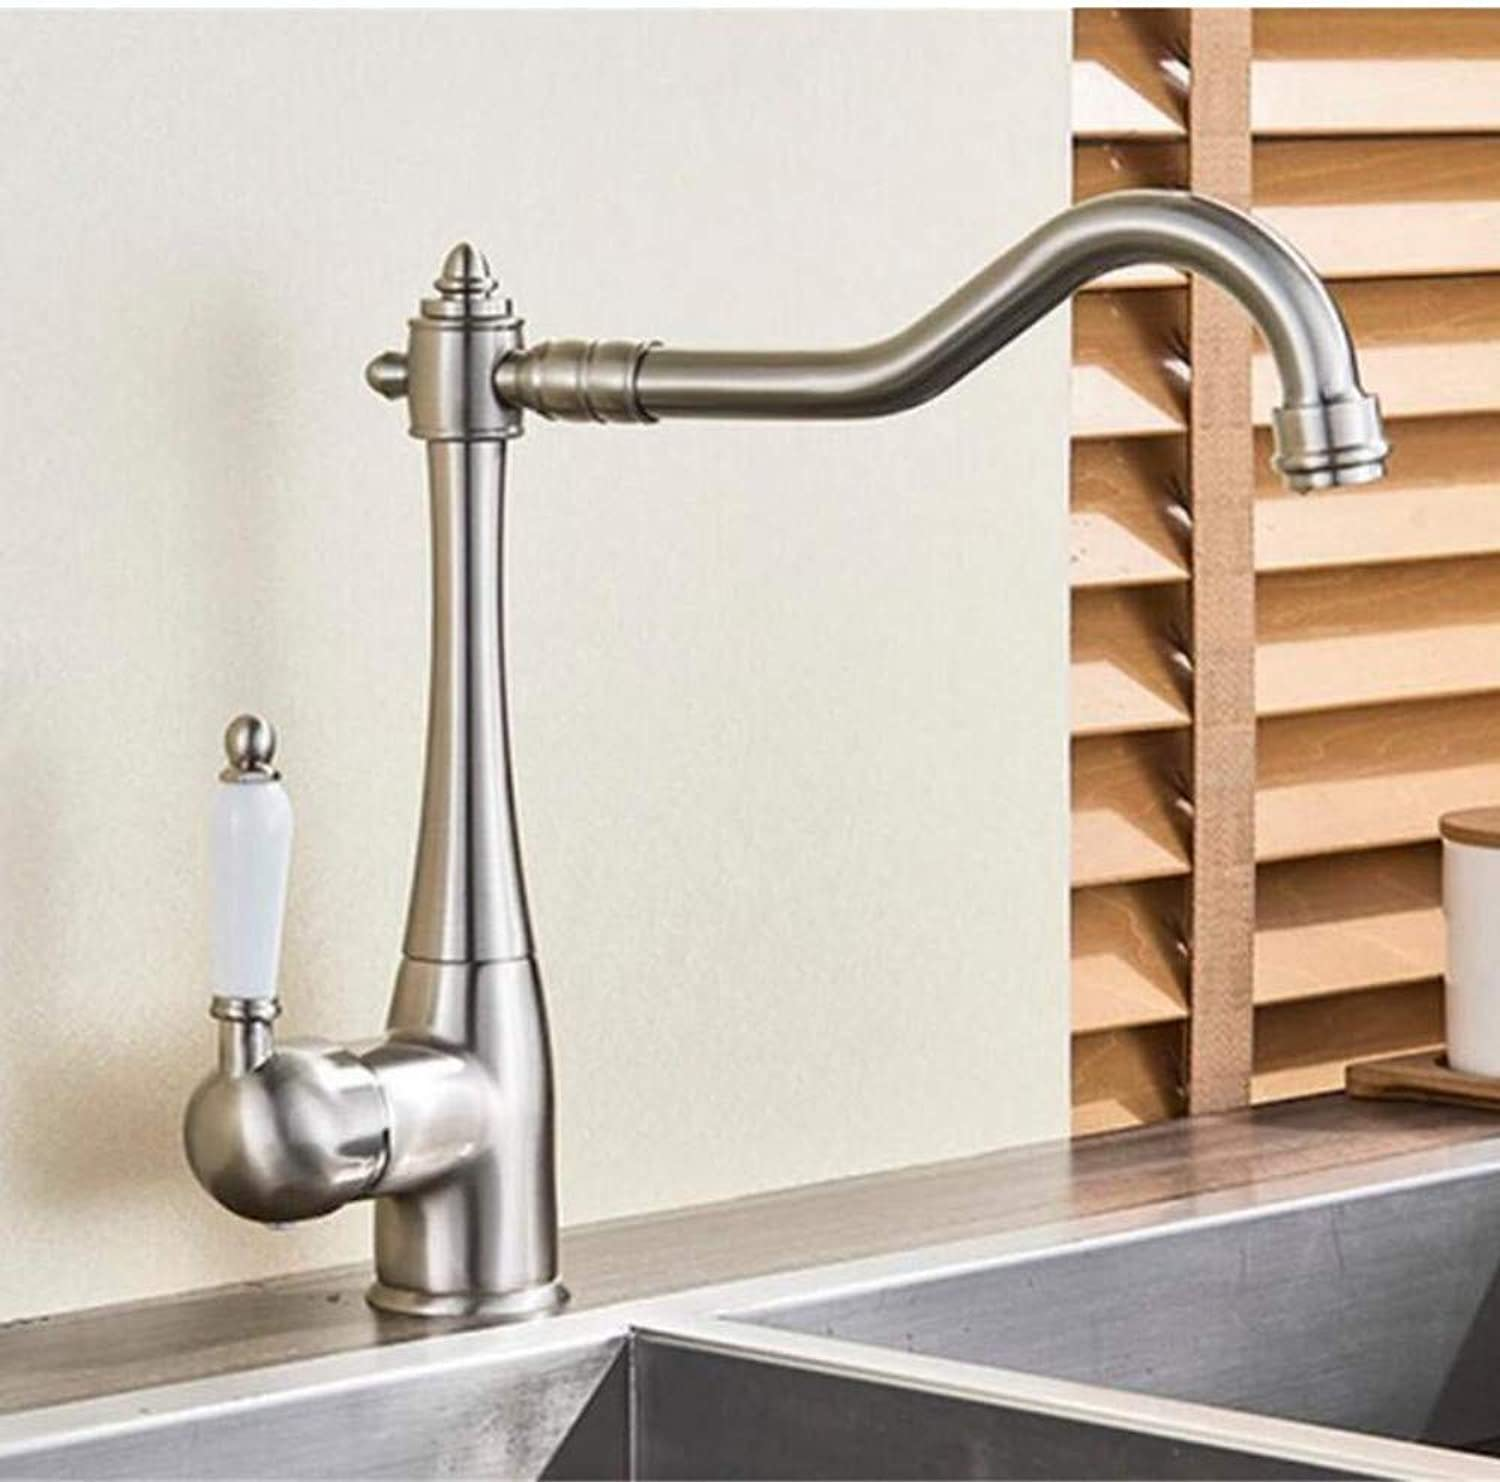 Brass Wall Faucet Chrome Brass Faucetbathroom Basin Faucet Double Handles Solid Brass Mixer Tap